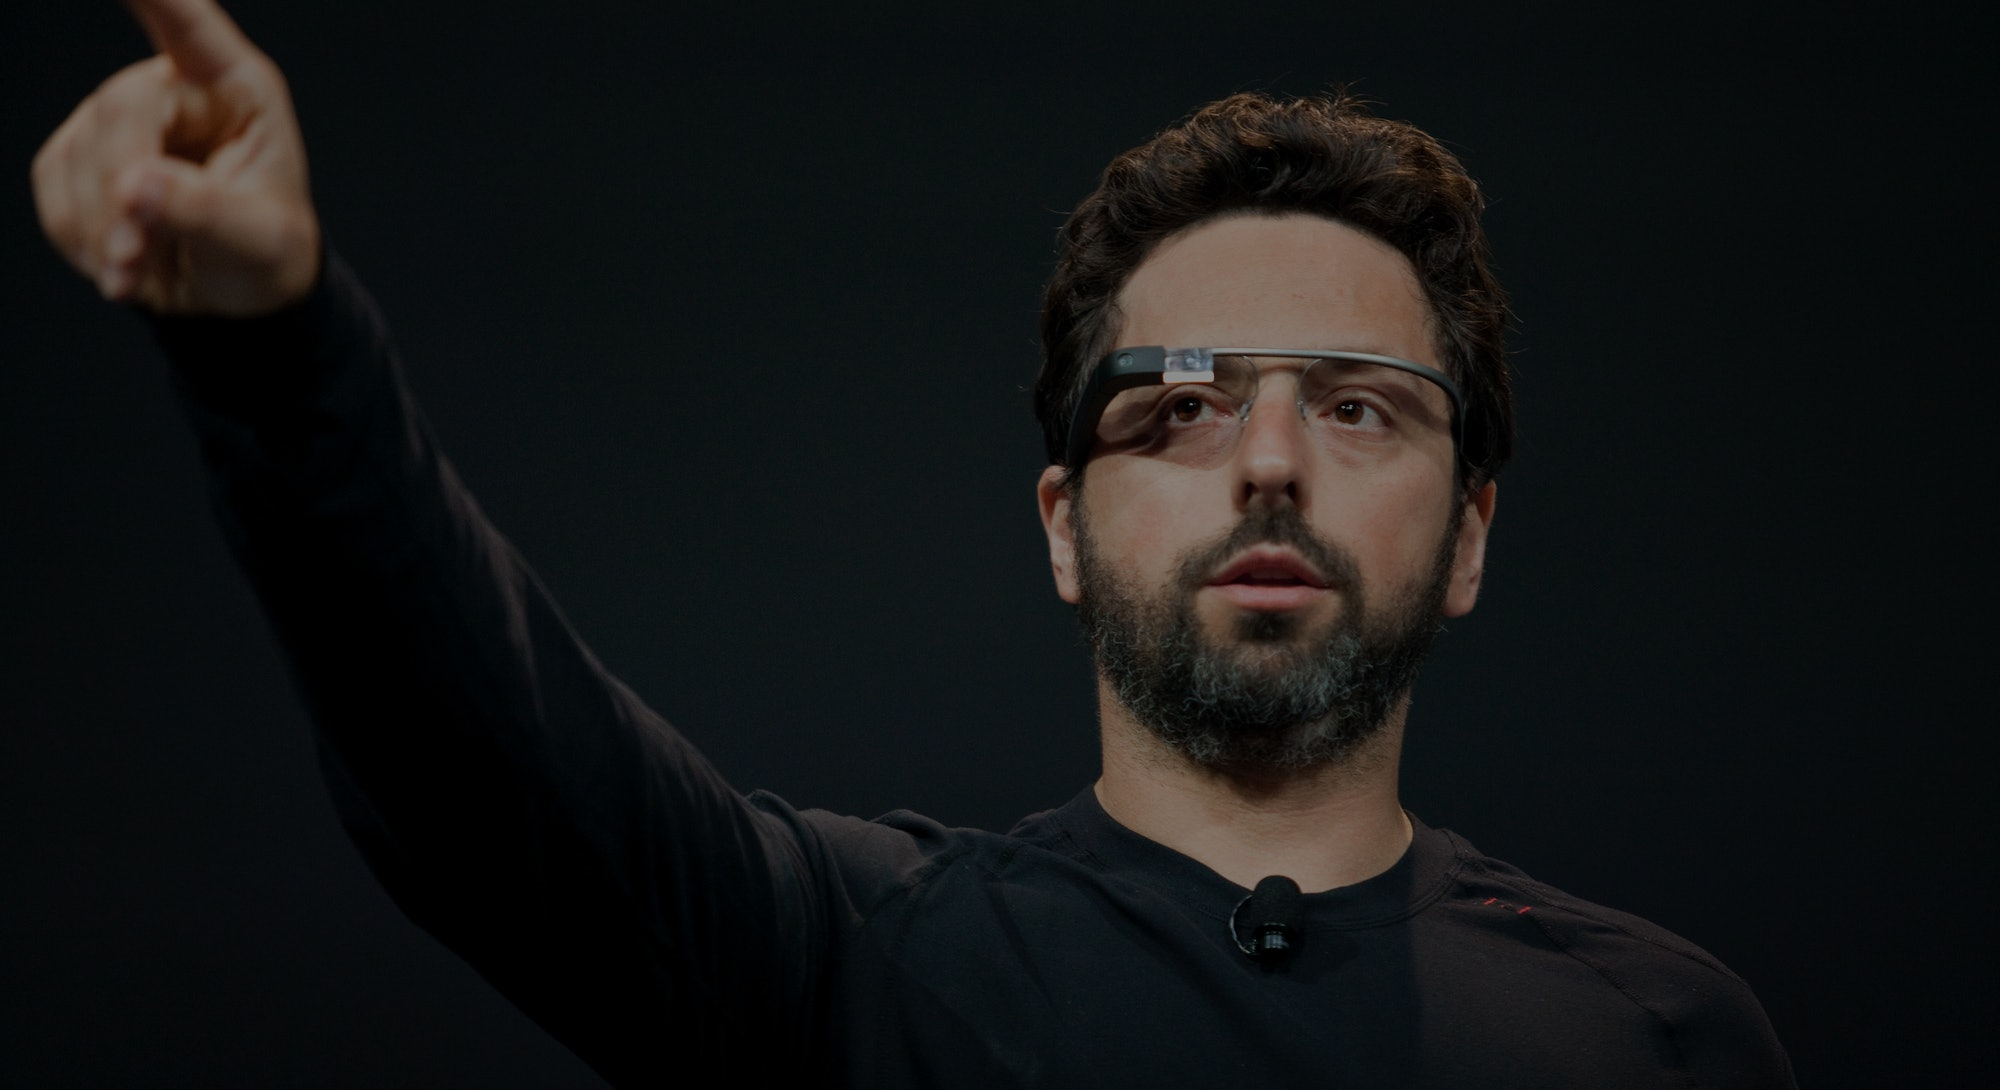 Google co-founder Sergey Brin demonstrates Project Glass, a wearable personal computer device, during the keynote speech at the Google I/O Developer Conference in San Francisco, California. (Photo by Kim Kulish/Corbis via Getty Images)